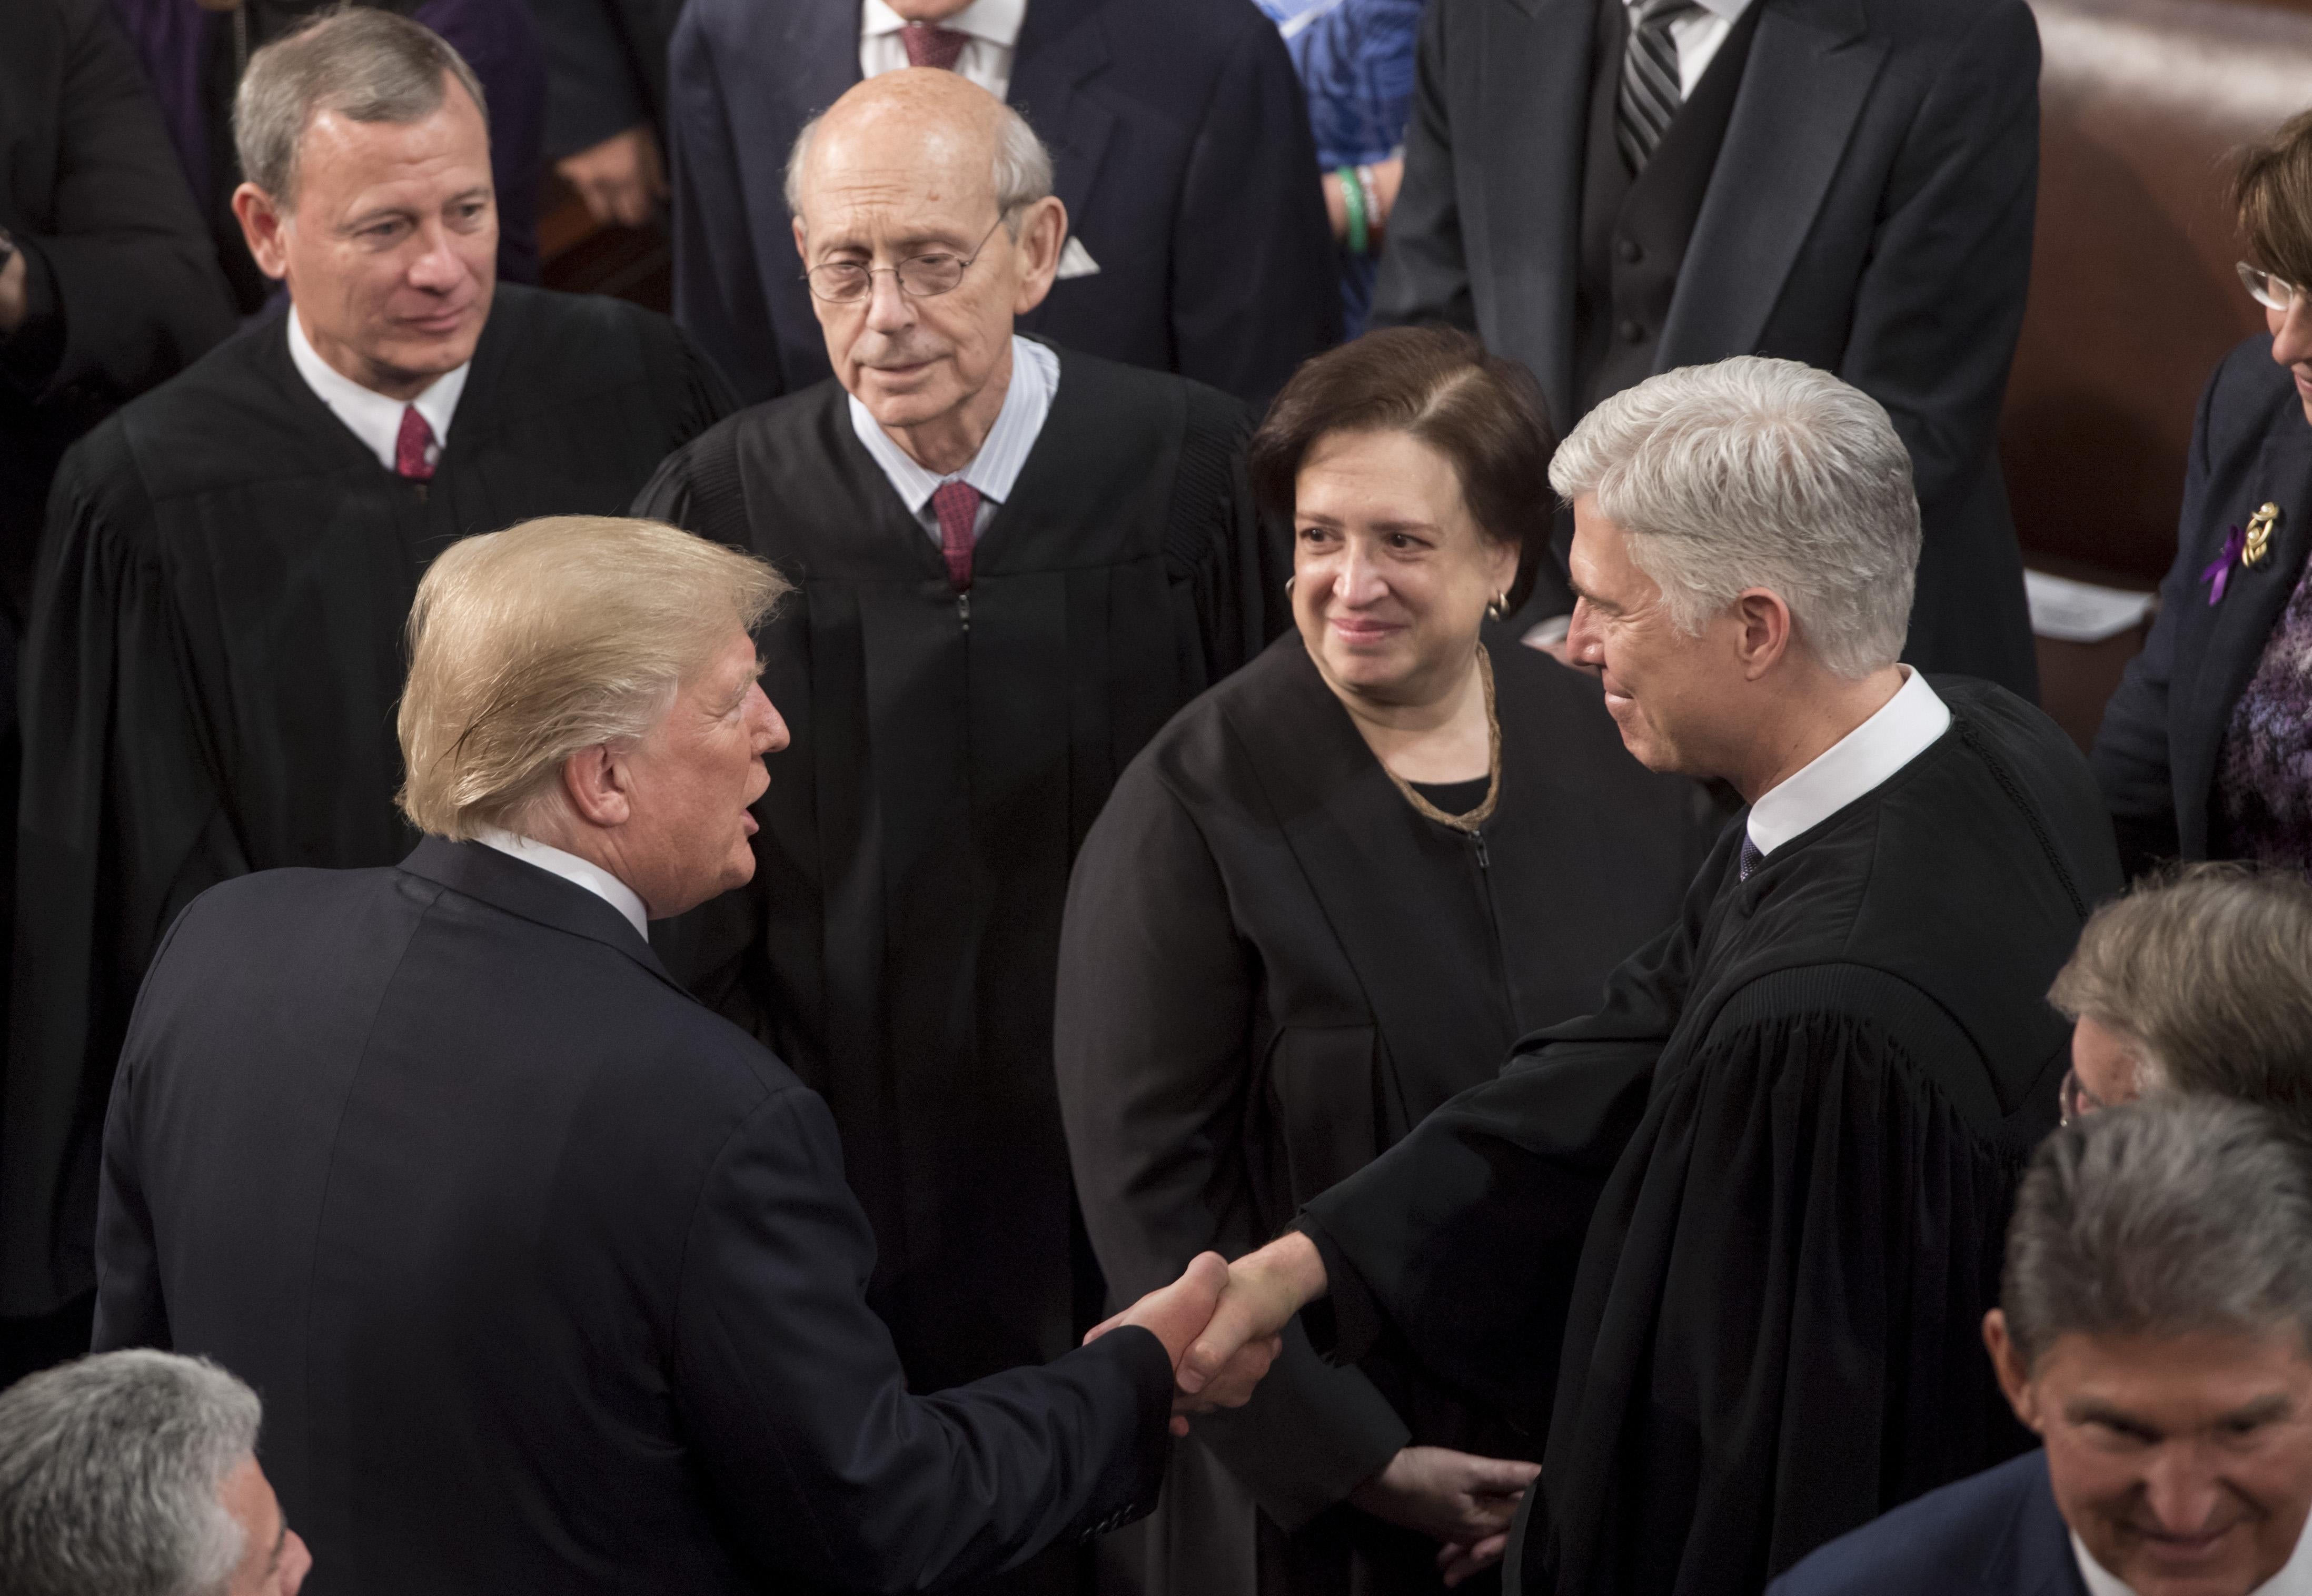 US President Donald Trump shakes hands with Supreme Court Justice Neil Gorsuch (R) alongside US Supreme Court Chief Justice John Roberts (L), Justice Stephen Breyer (2L), and Elena Kagan (2R), during the State of the Union Address before a Joint Session of Congress at the US Capitol in Washington, DC, January 30, 2018. / AFP PHOTO / SAUL LOEB        (Photo credit should read SAUL LOEB/AFP/Getty Images)